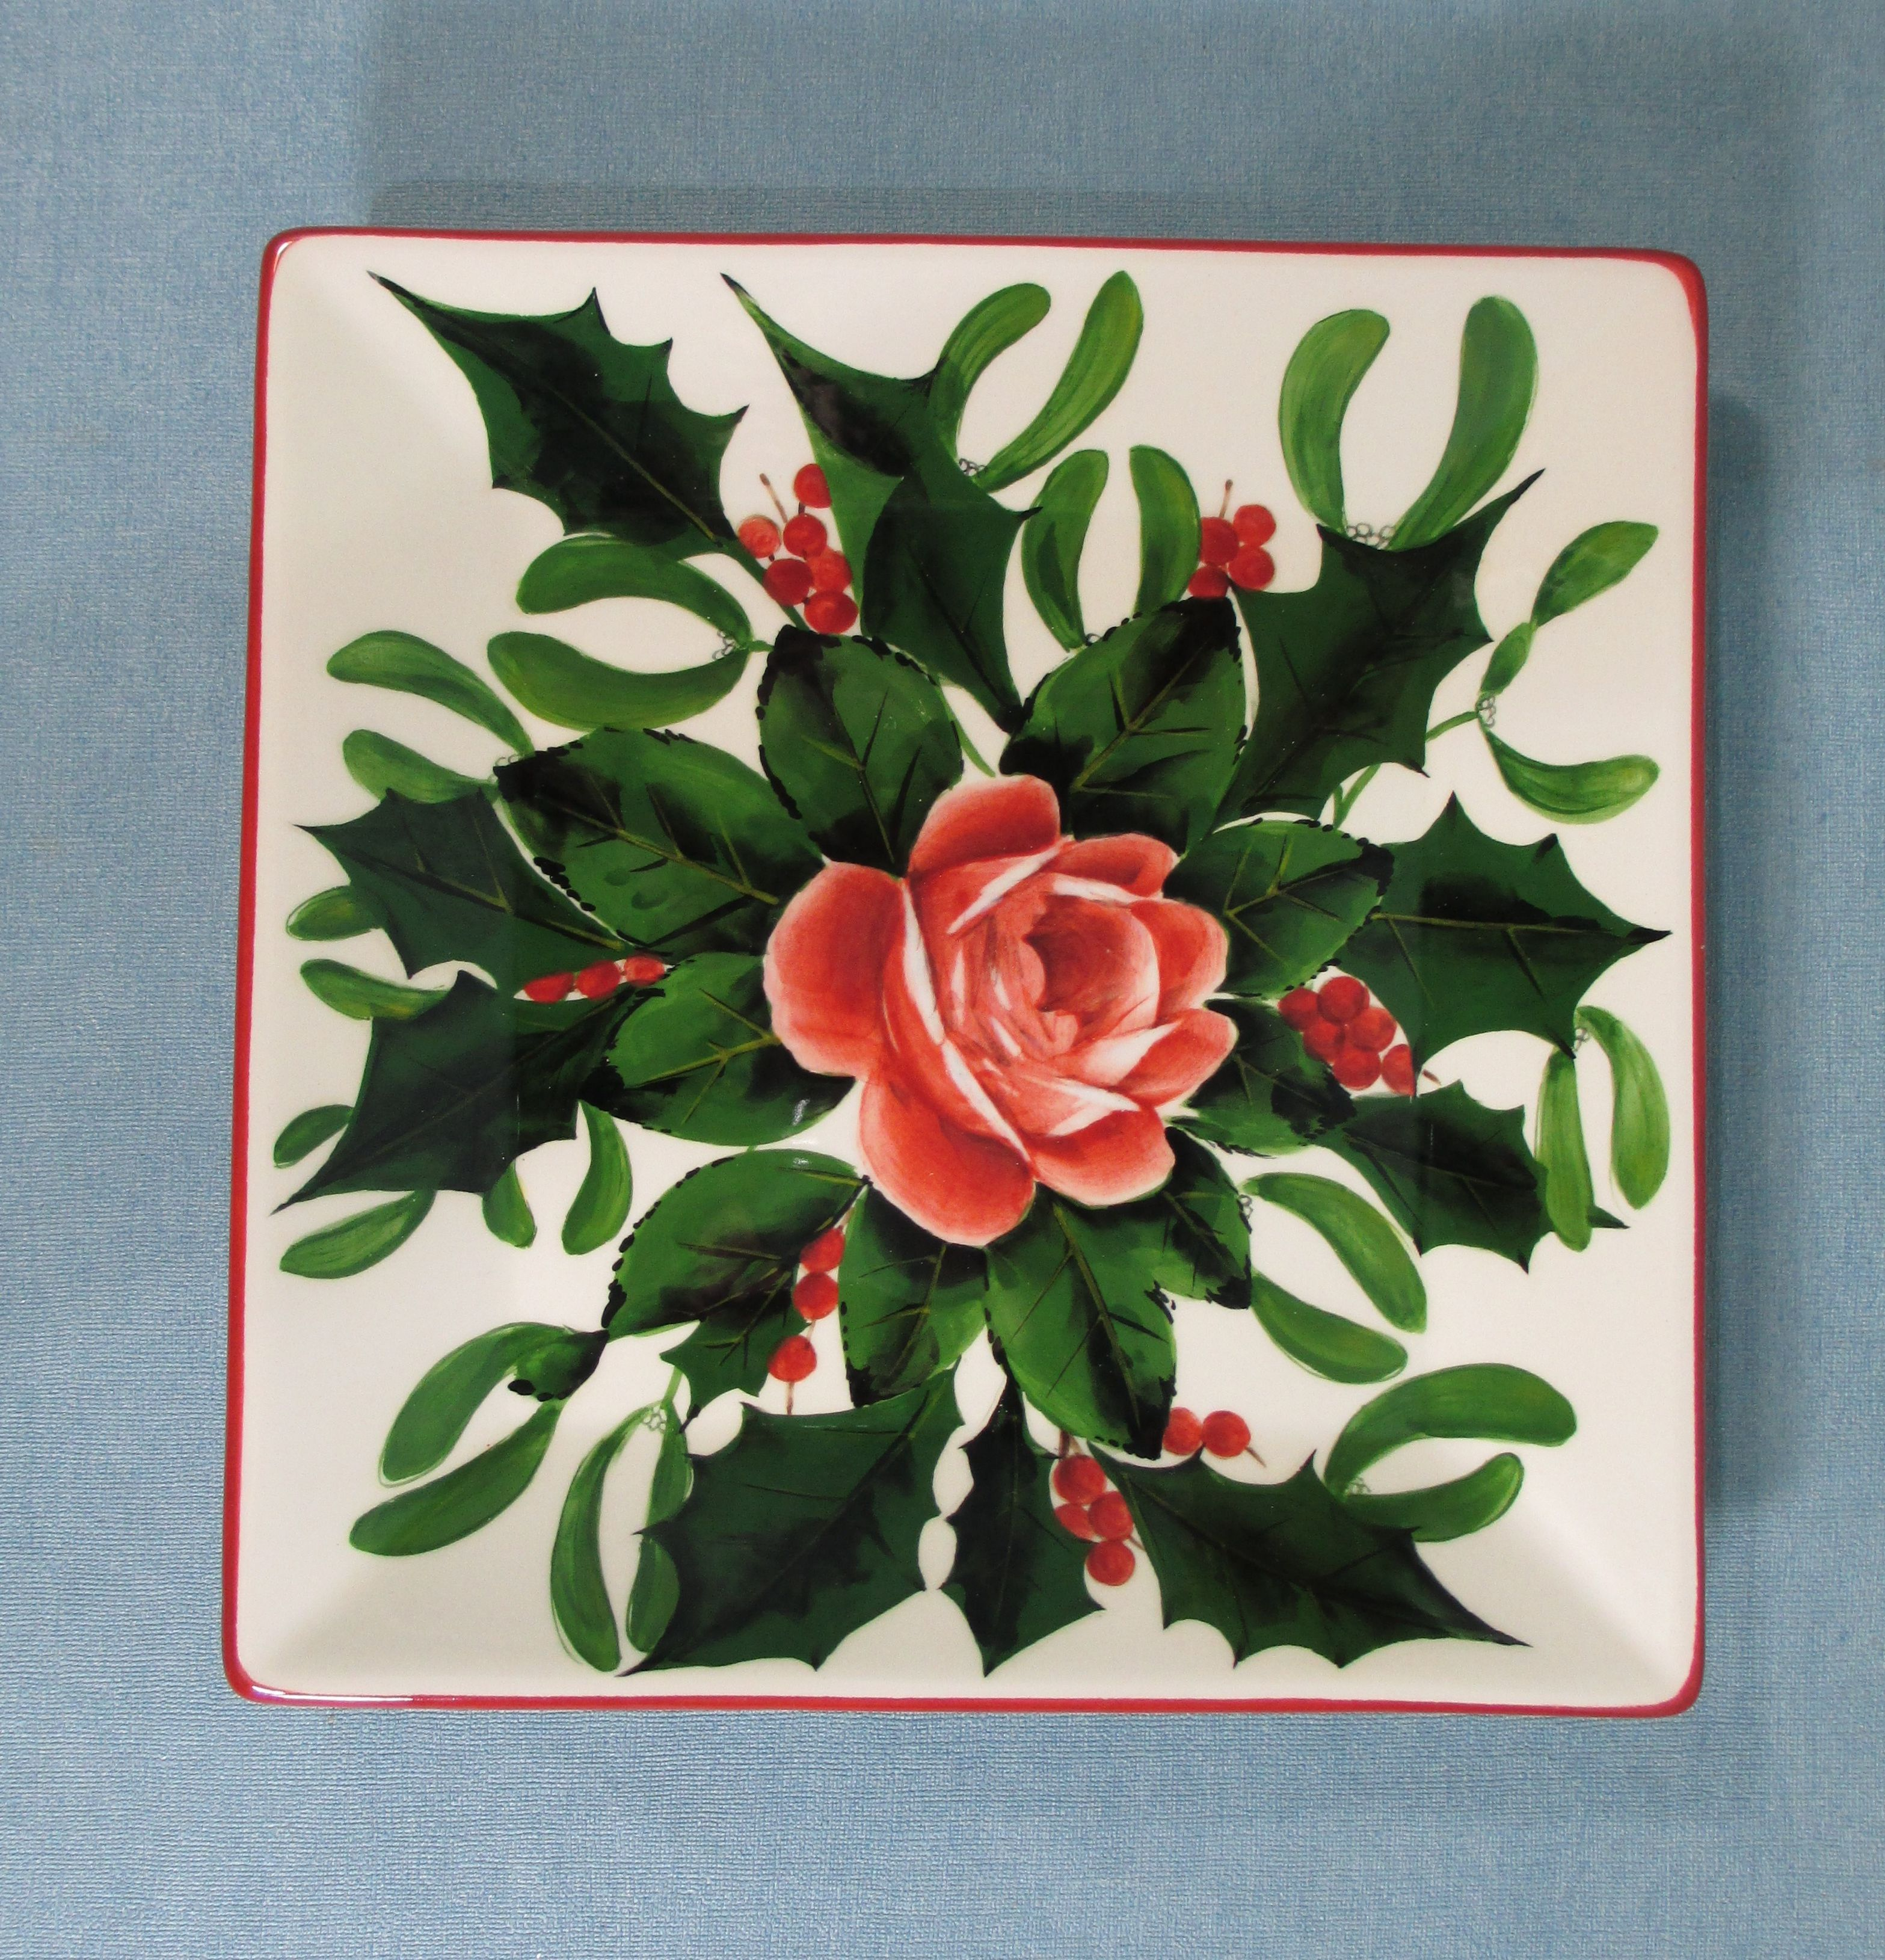 Christmas Wreath Wemyss Ware Square Plate by Griselda Hill Pottery Ltd